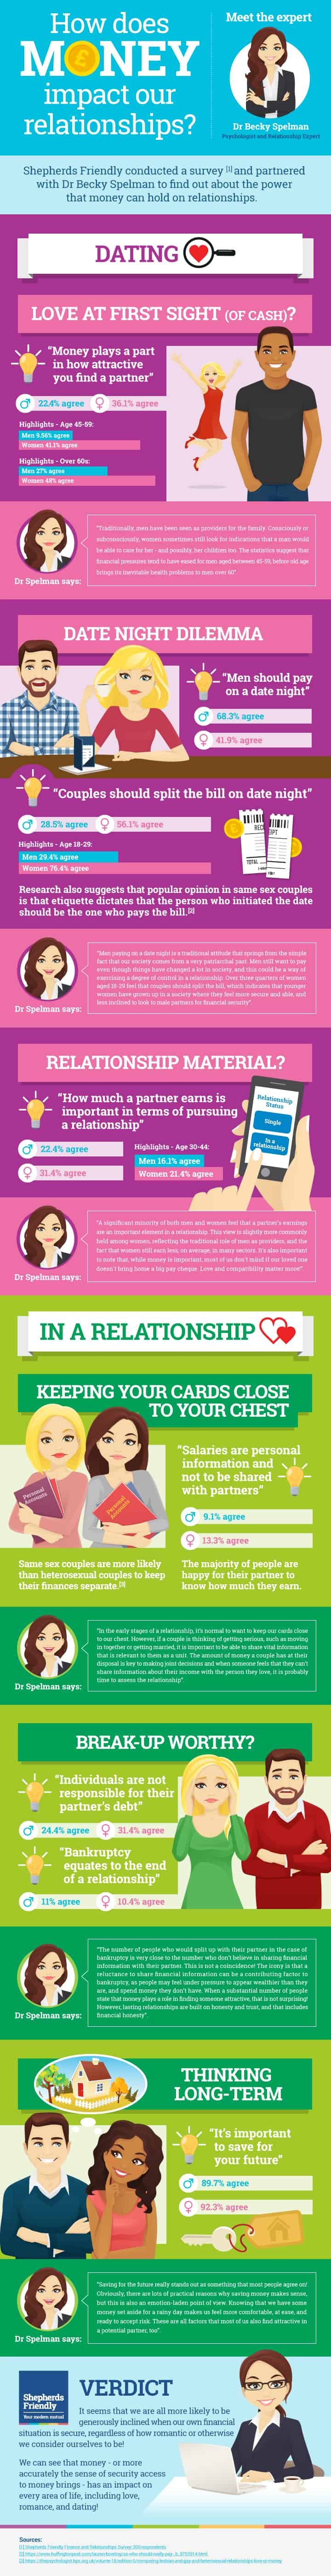 infographc about finances in relationships, click to be taken to a screen reader friendly version